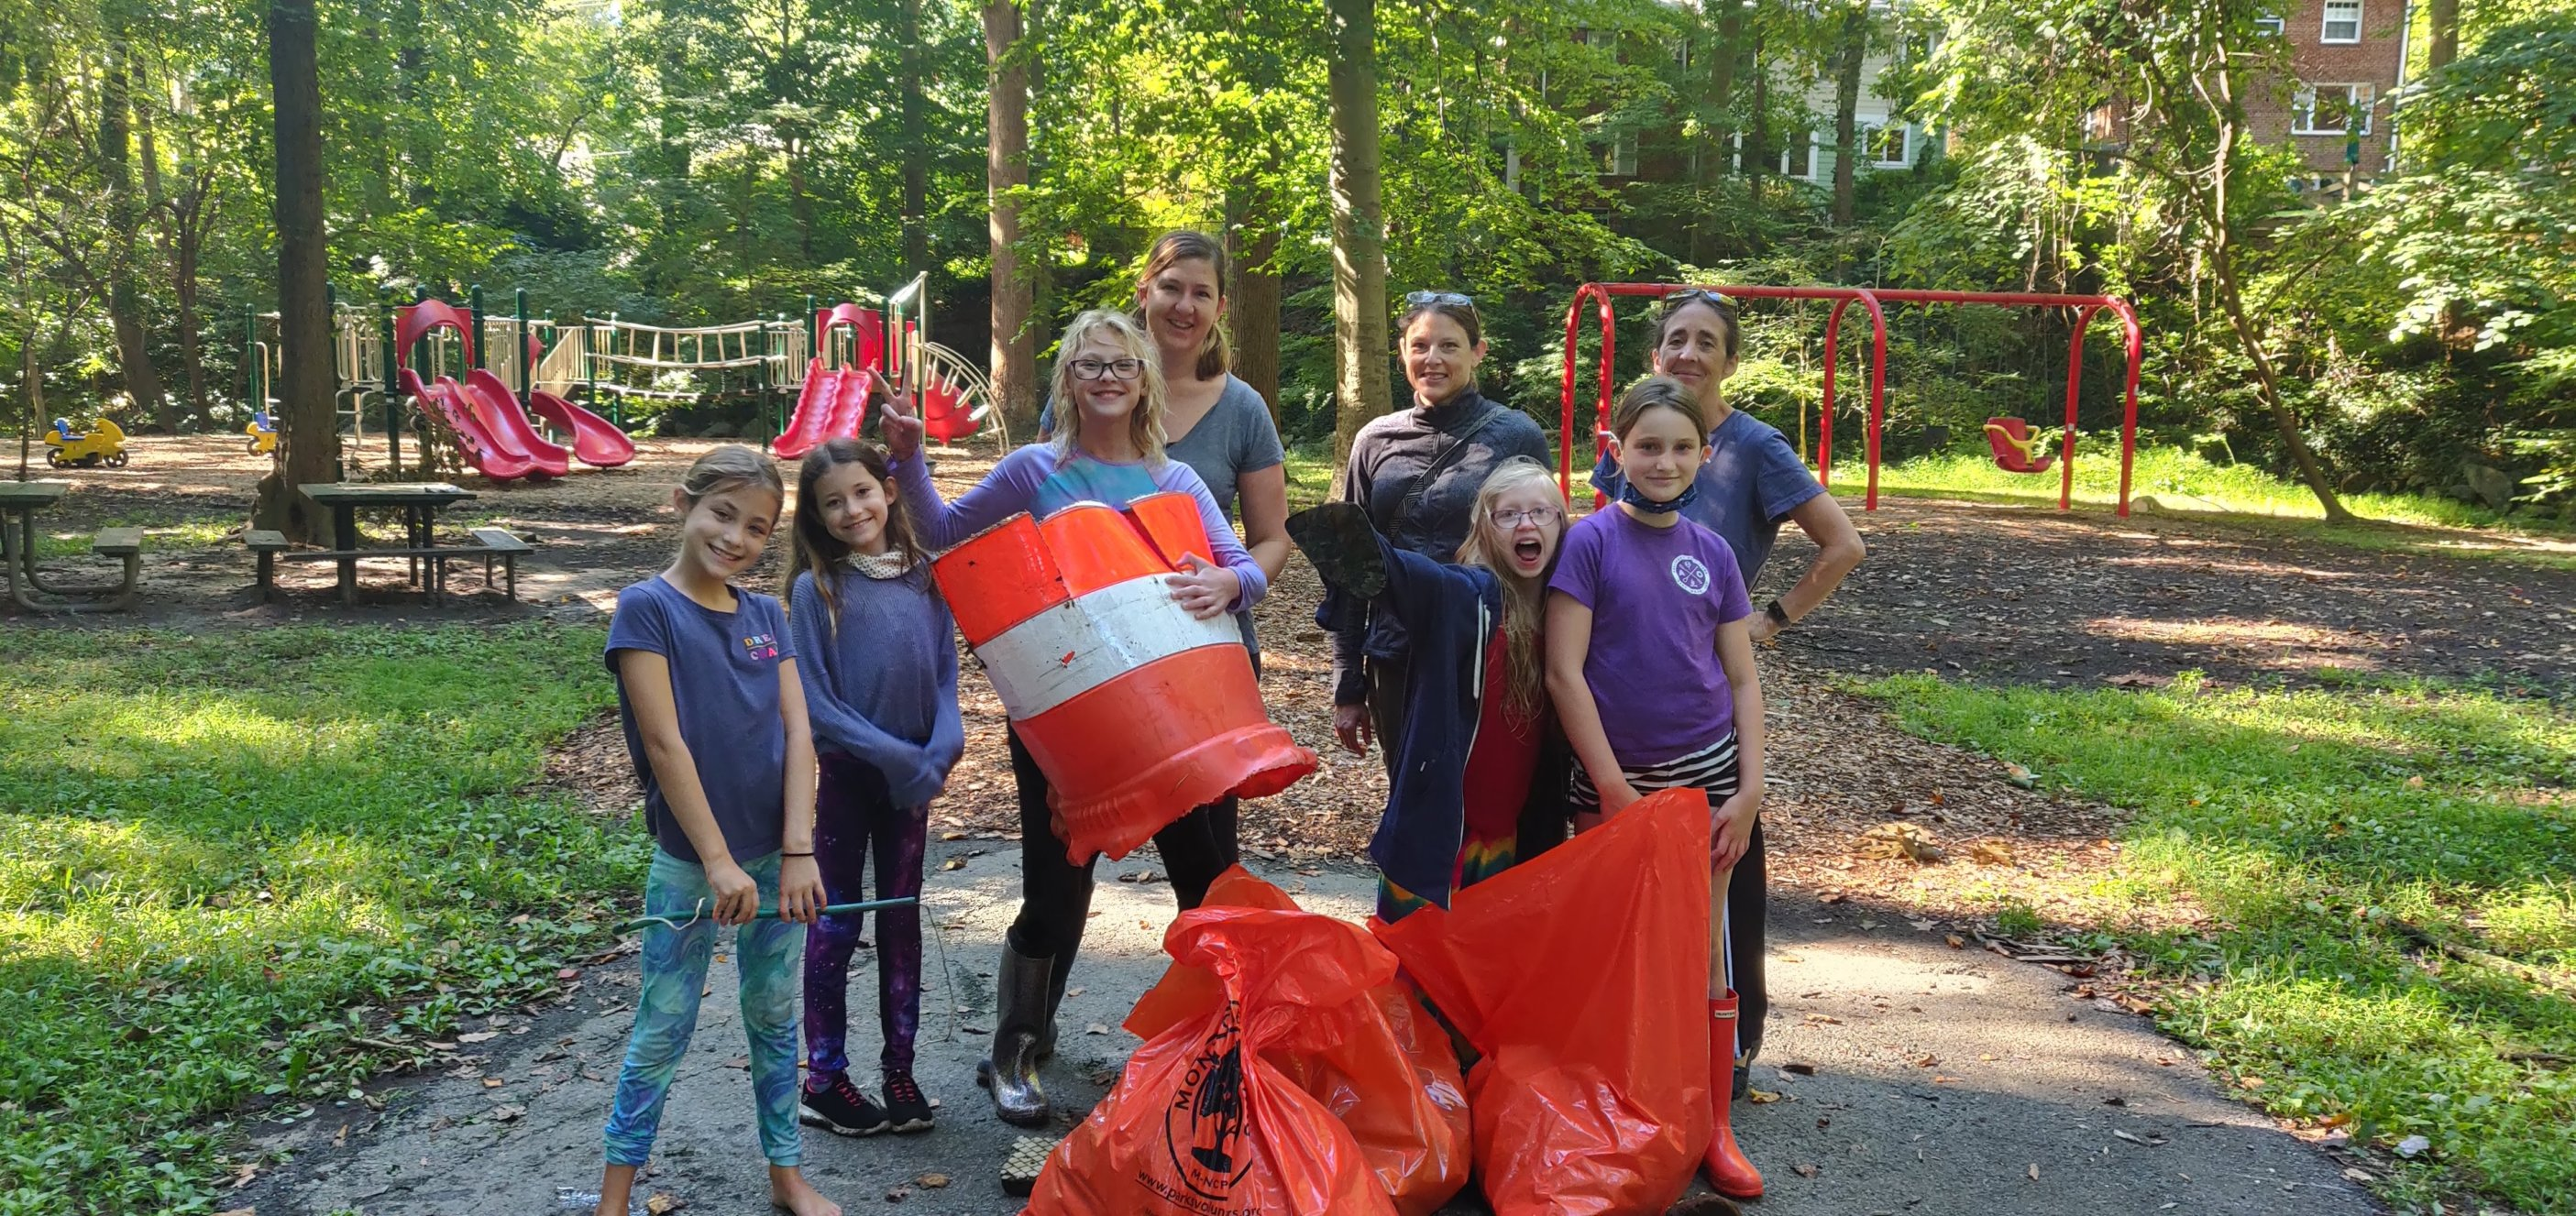 The mighty sweepers of Girl Scout troop 34039 in Section 10 Lower Long Branch